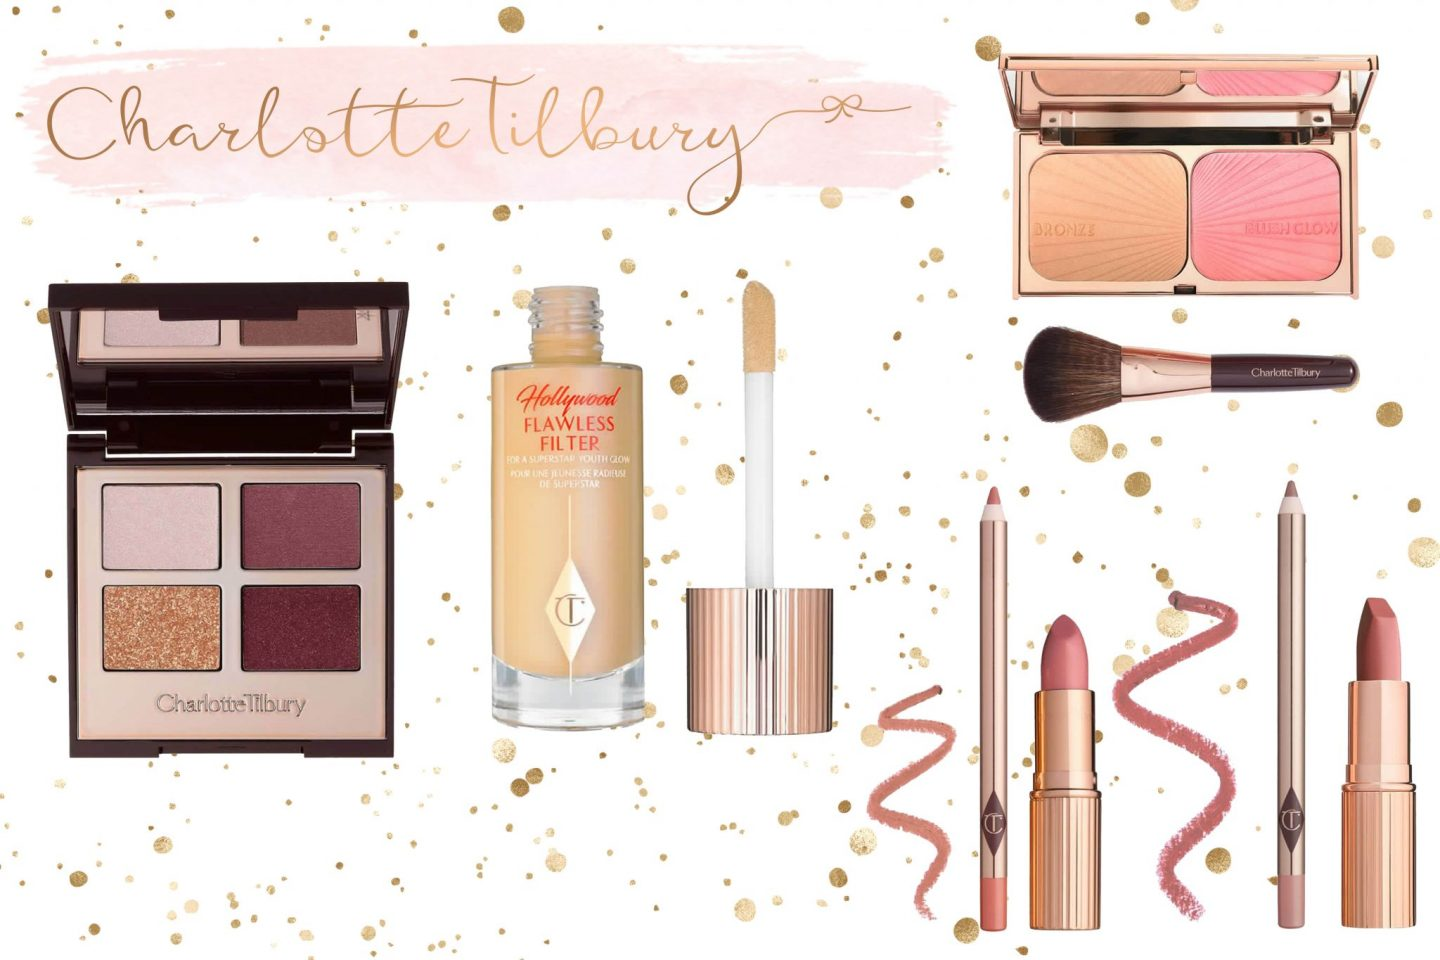 Makeup Brands I'm Dying To Try Out Now - Charlotte Tilbury